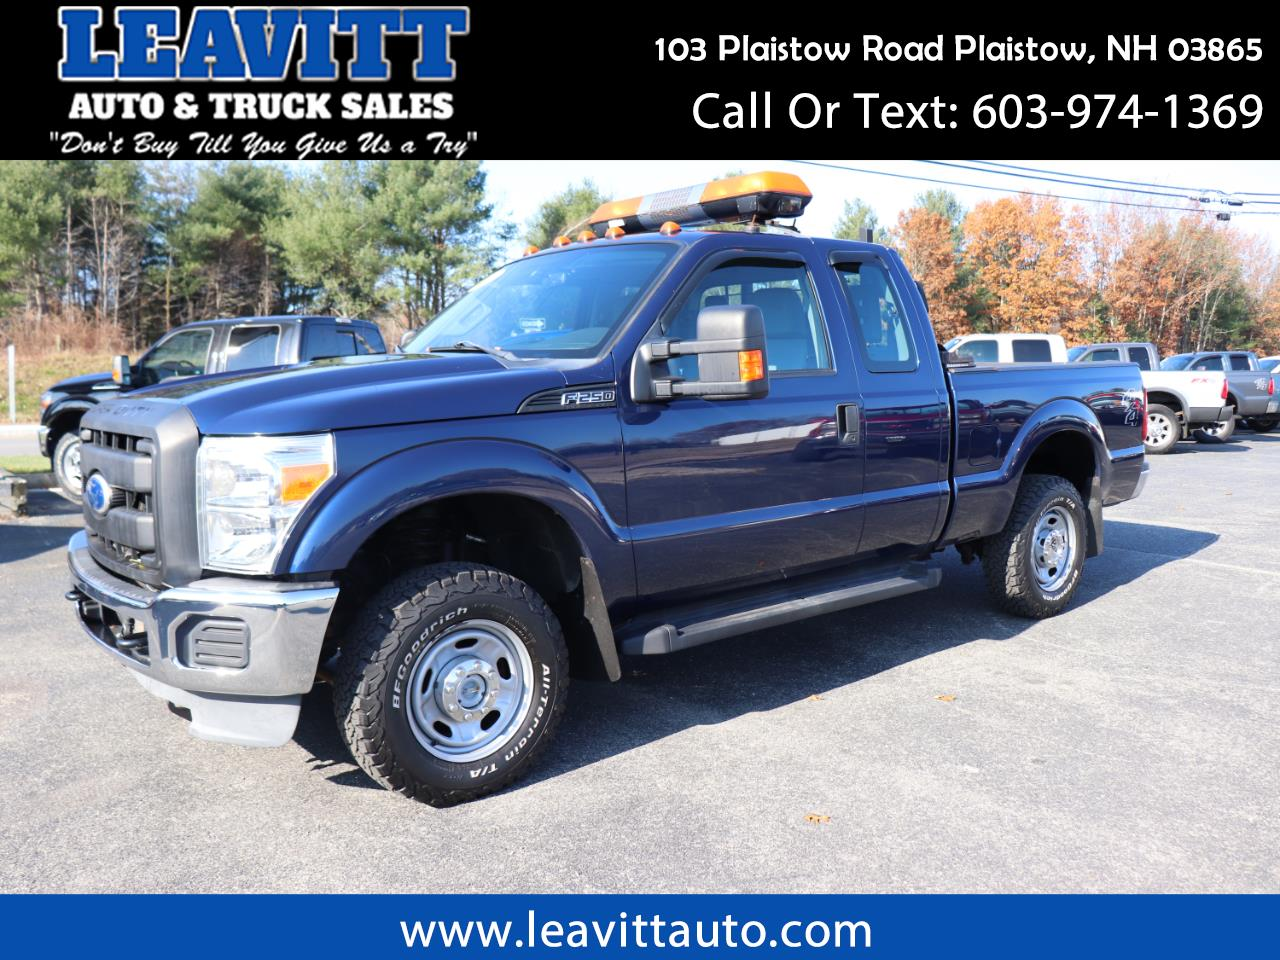 2011 Ford F-250 SD XLT SUPERCAB 45K MILES!